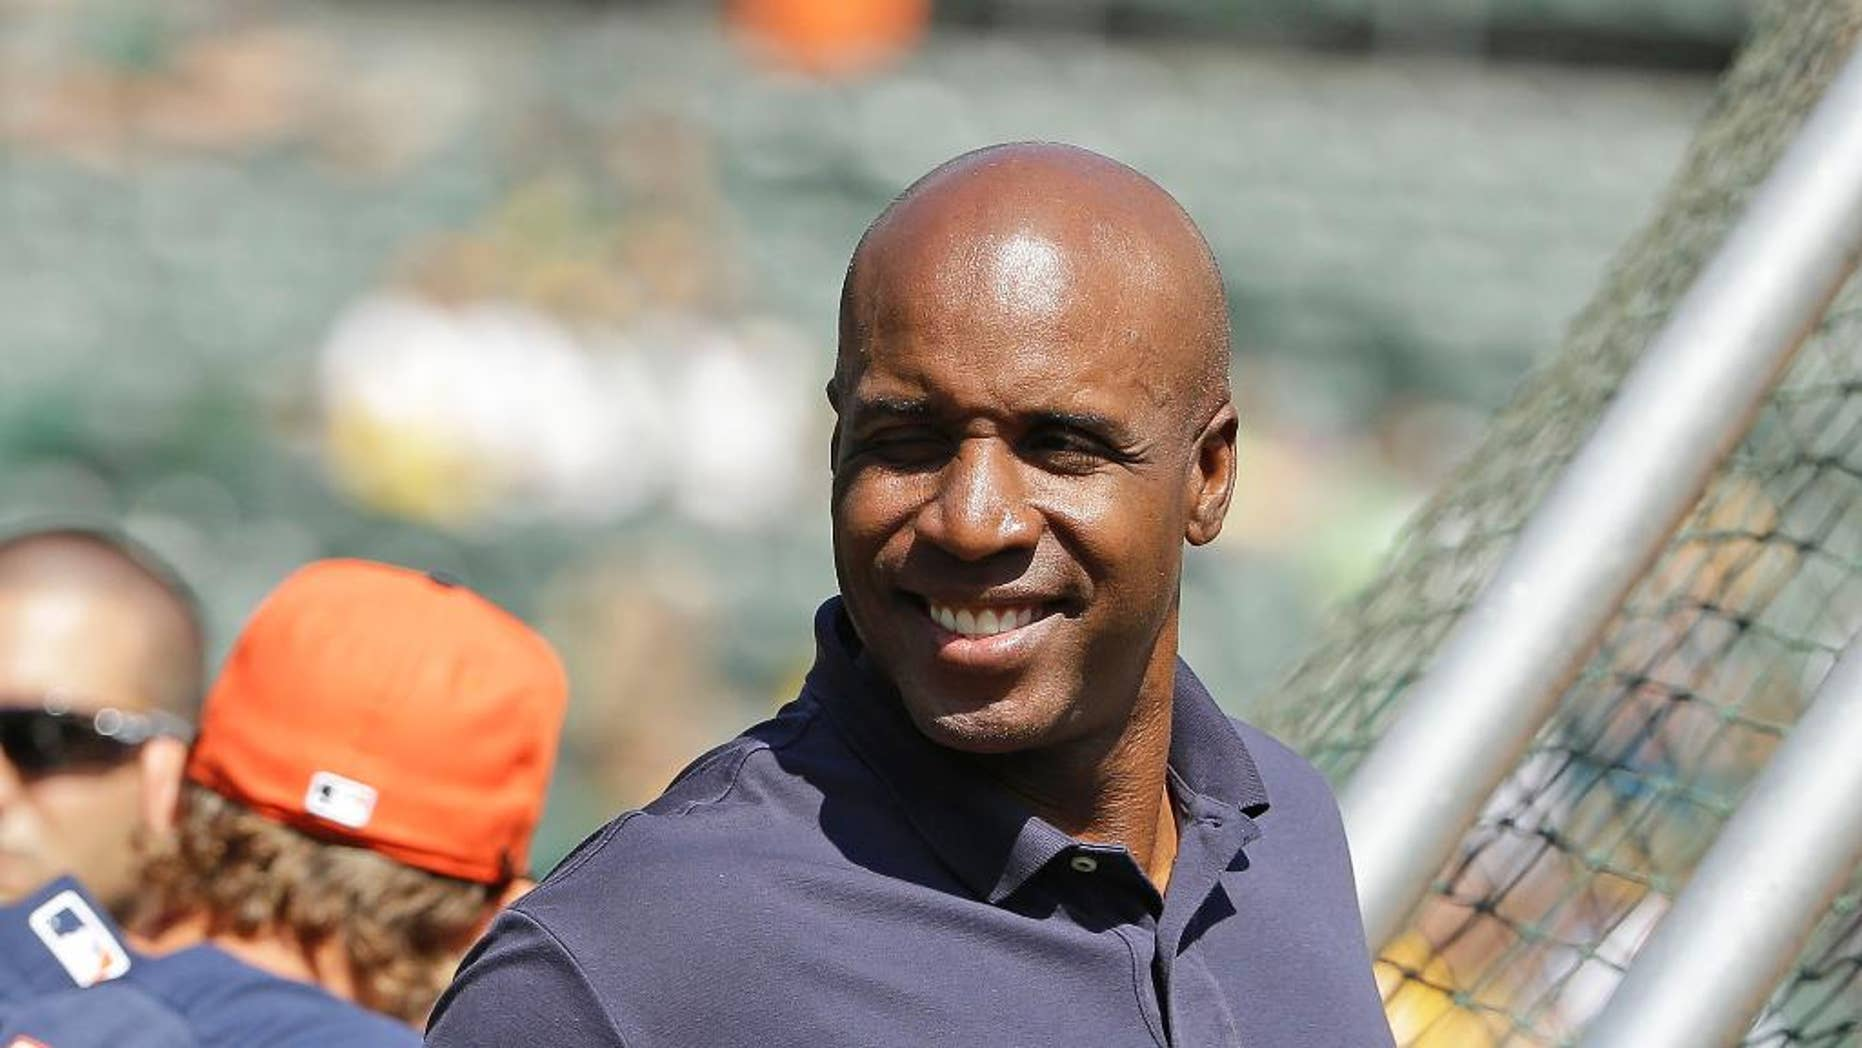 Career home run leader king Barry Bonds gives a thumbs up while standing behind the hitting cage and watching the Houston Astros take batting practice before the start of their baseball game against the Oakland Athletics Saturday, Sept. 6, 2014, in Oakland, Calif. (AP Photo/Eric Risberg)